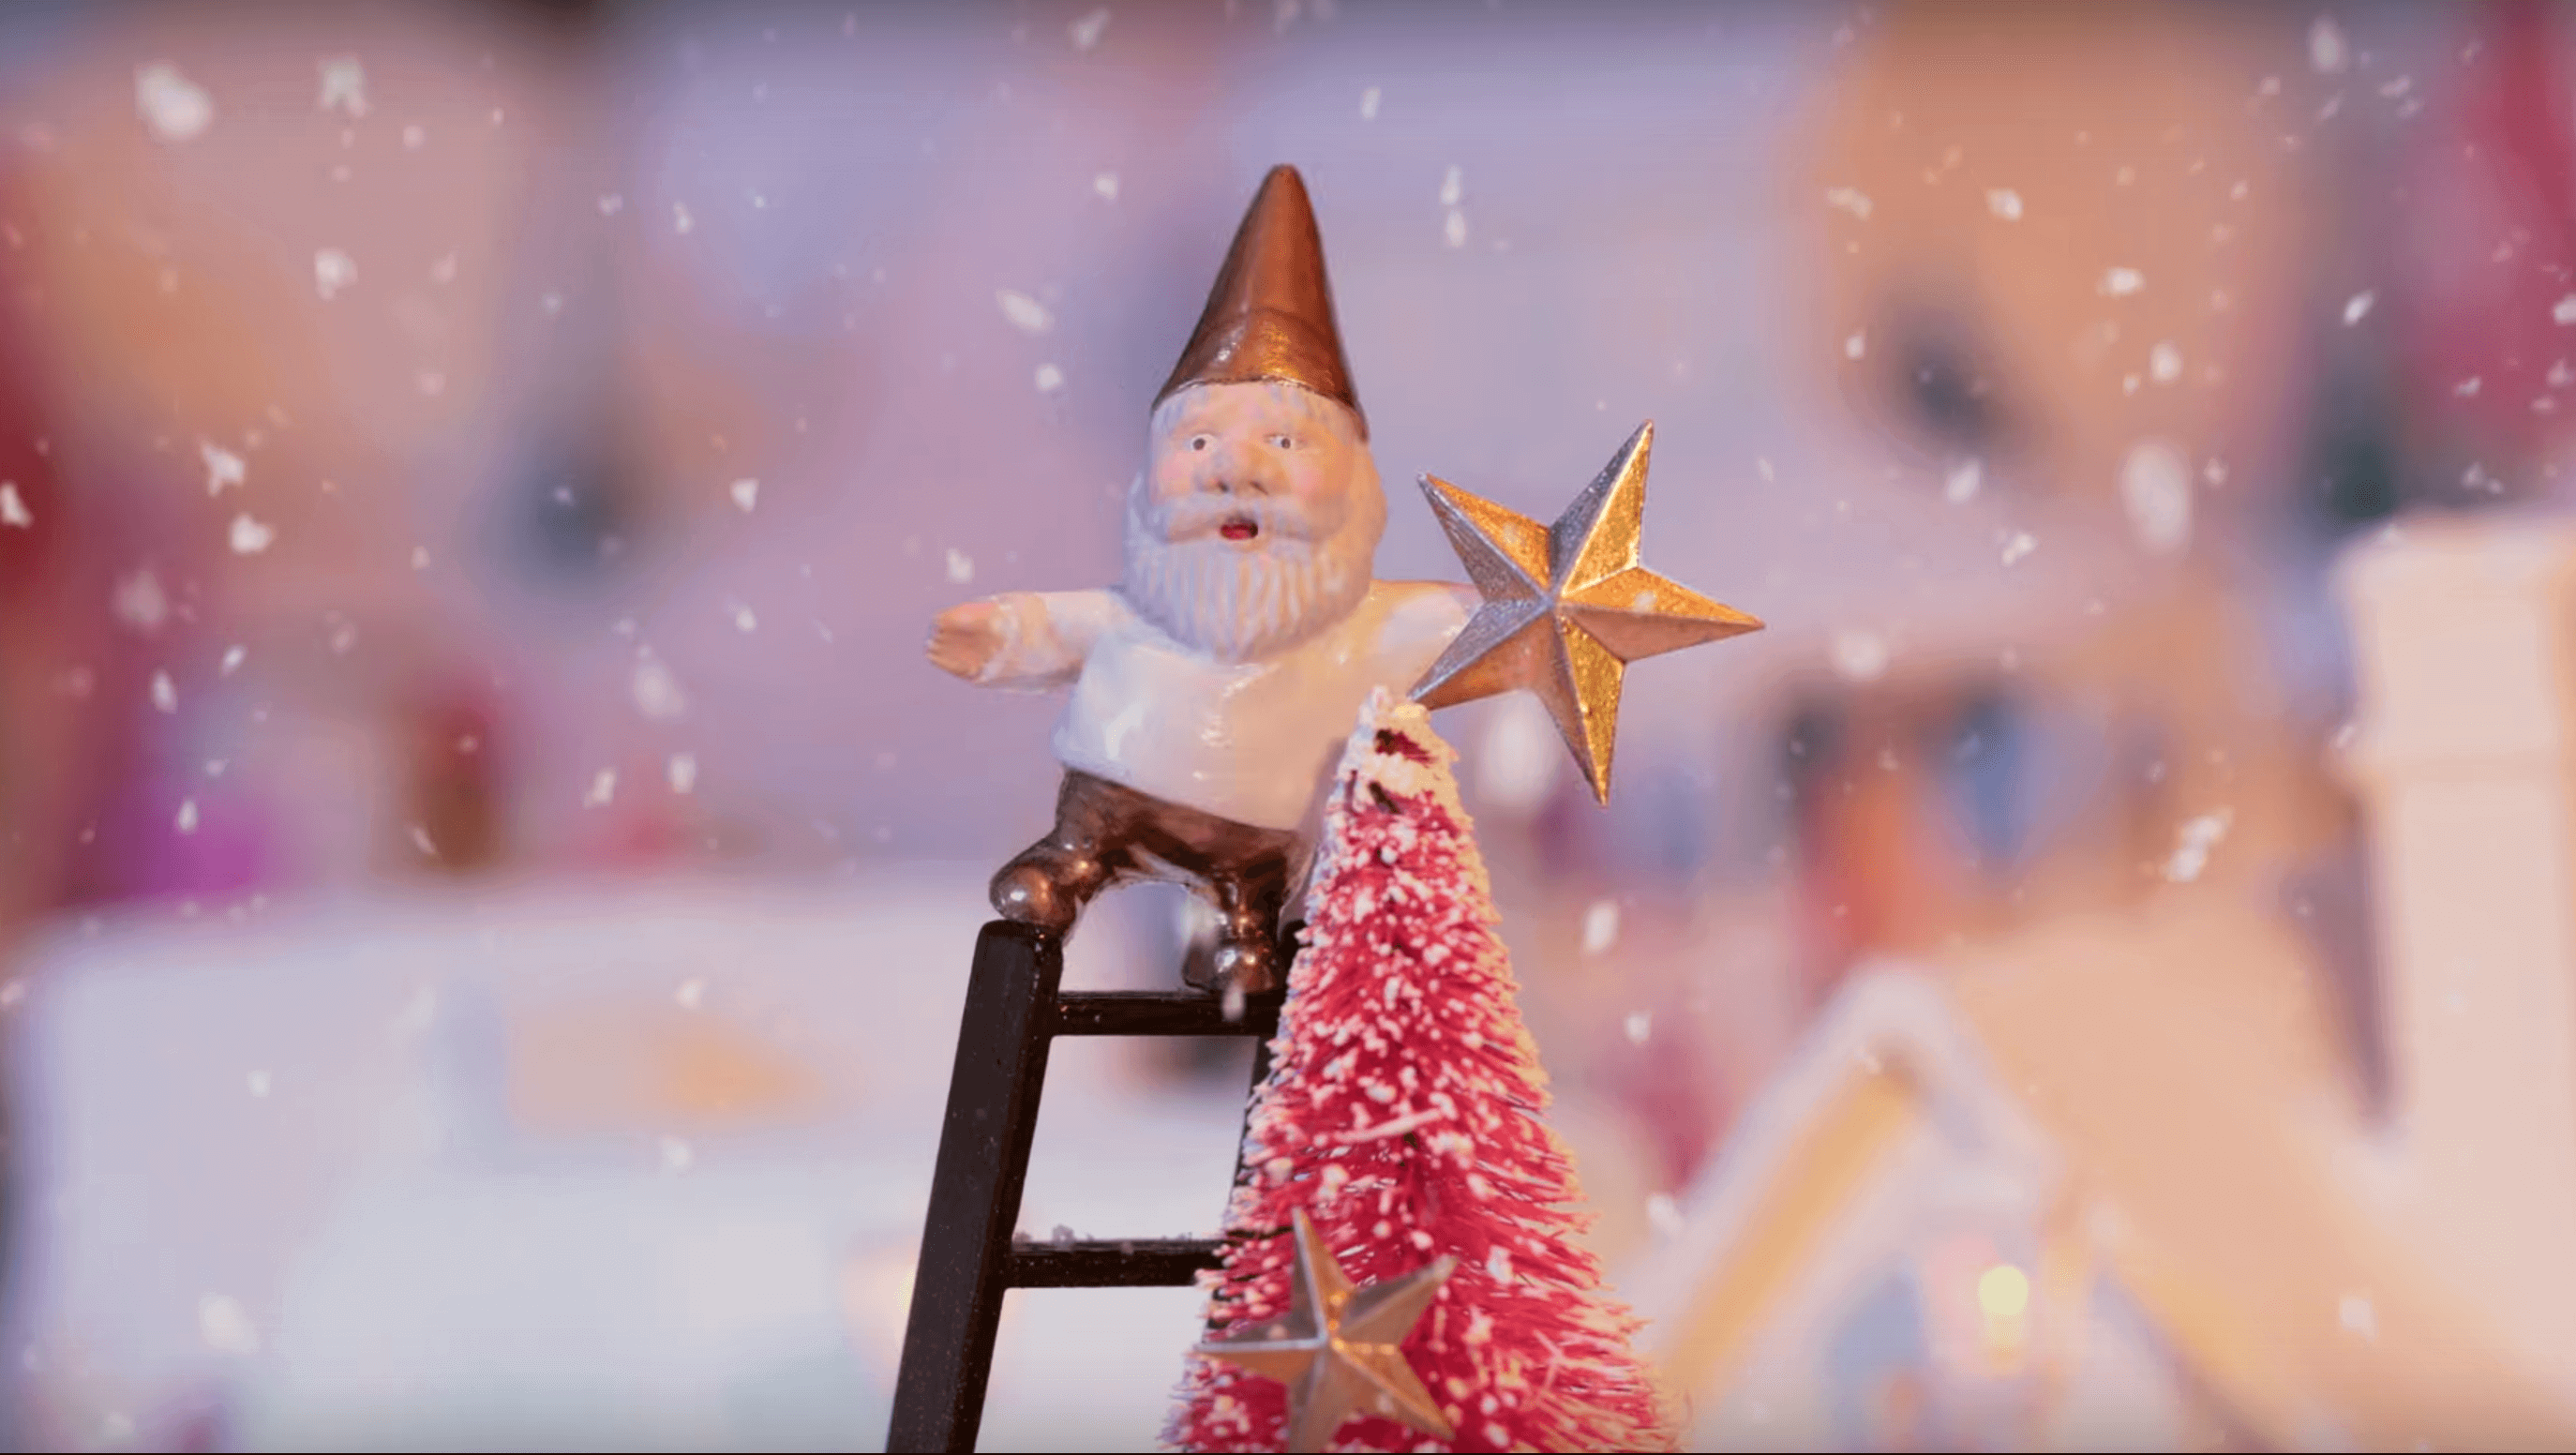 Get in a Festive Mood with this Stop-Motion Film | All3DP